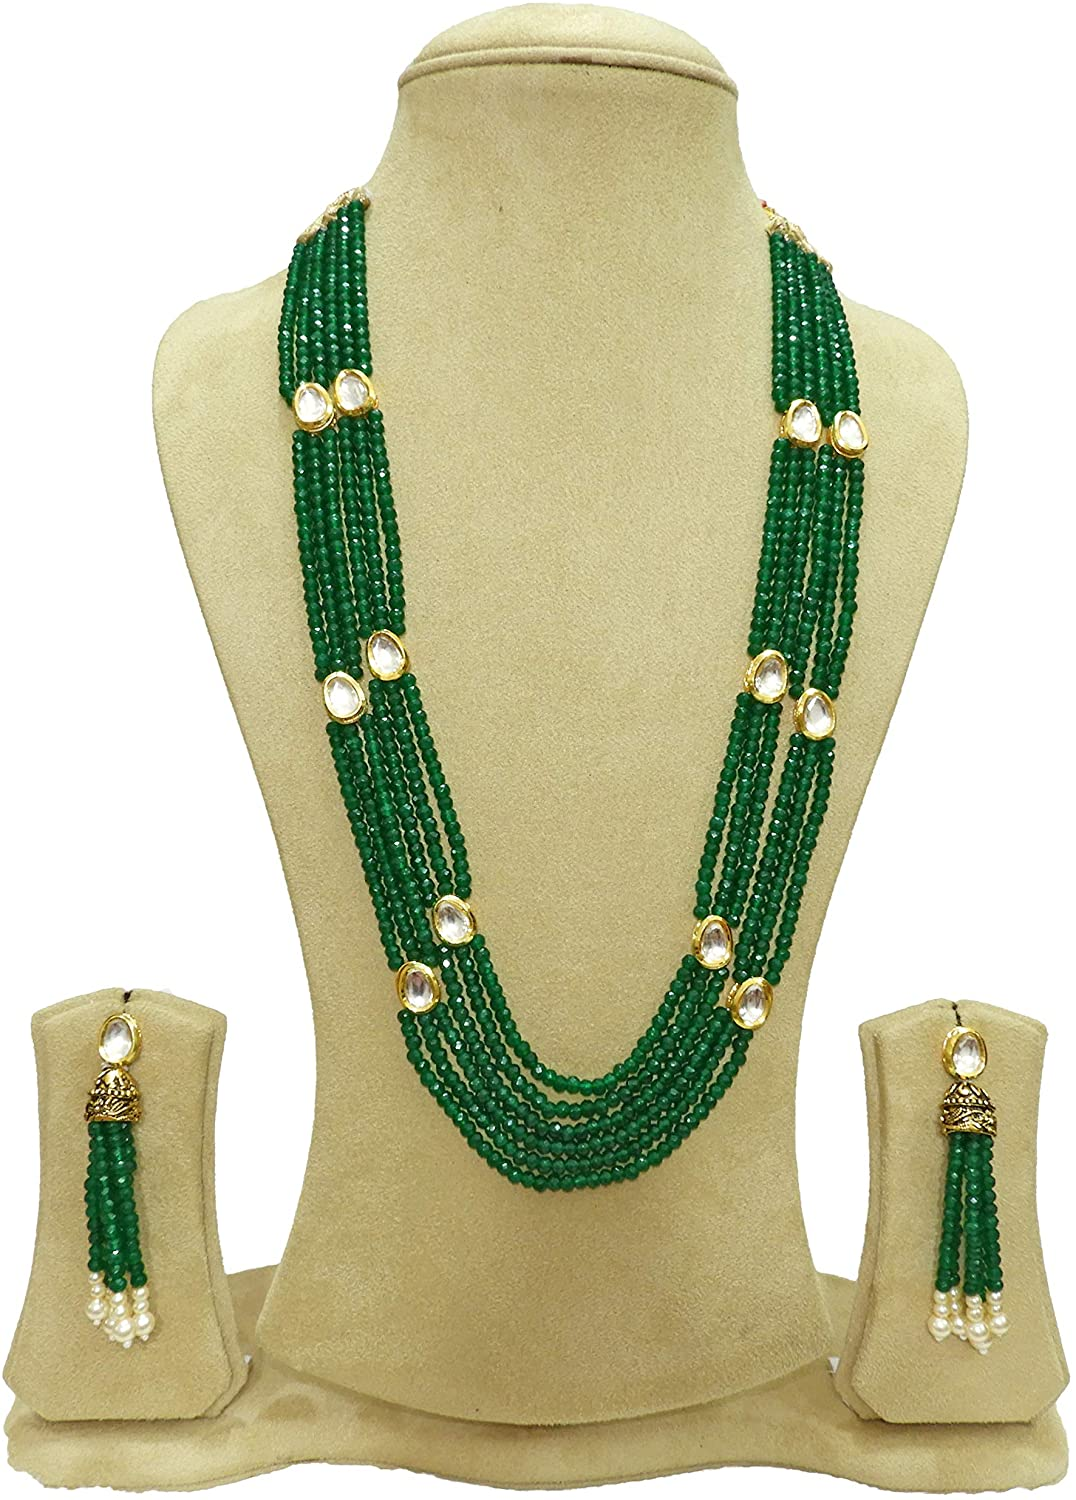 BabosaSakhi Tradition Kundan Green Onyx Bead Long String Ethnic Necklace